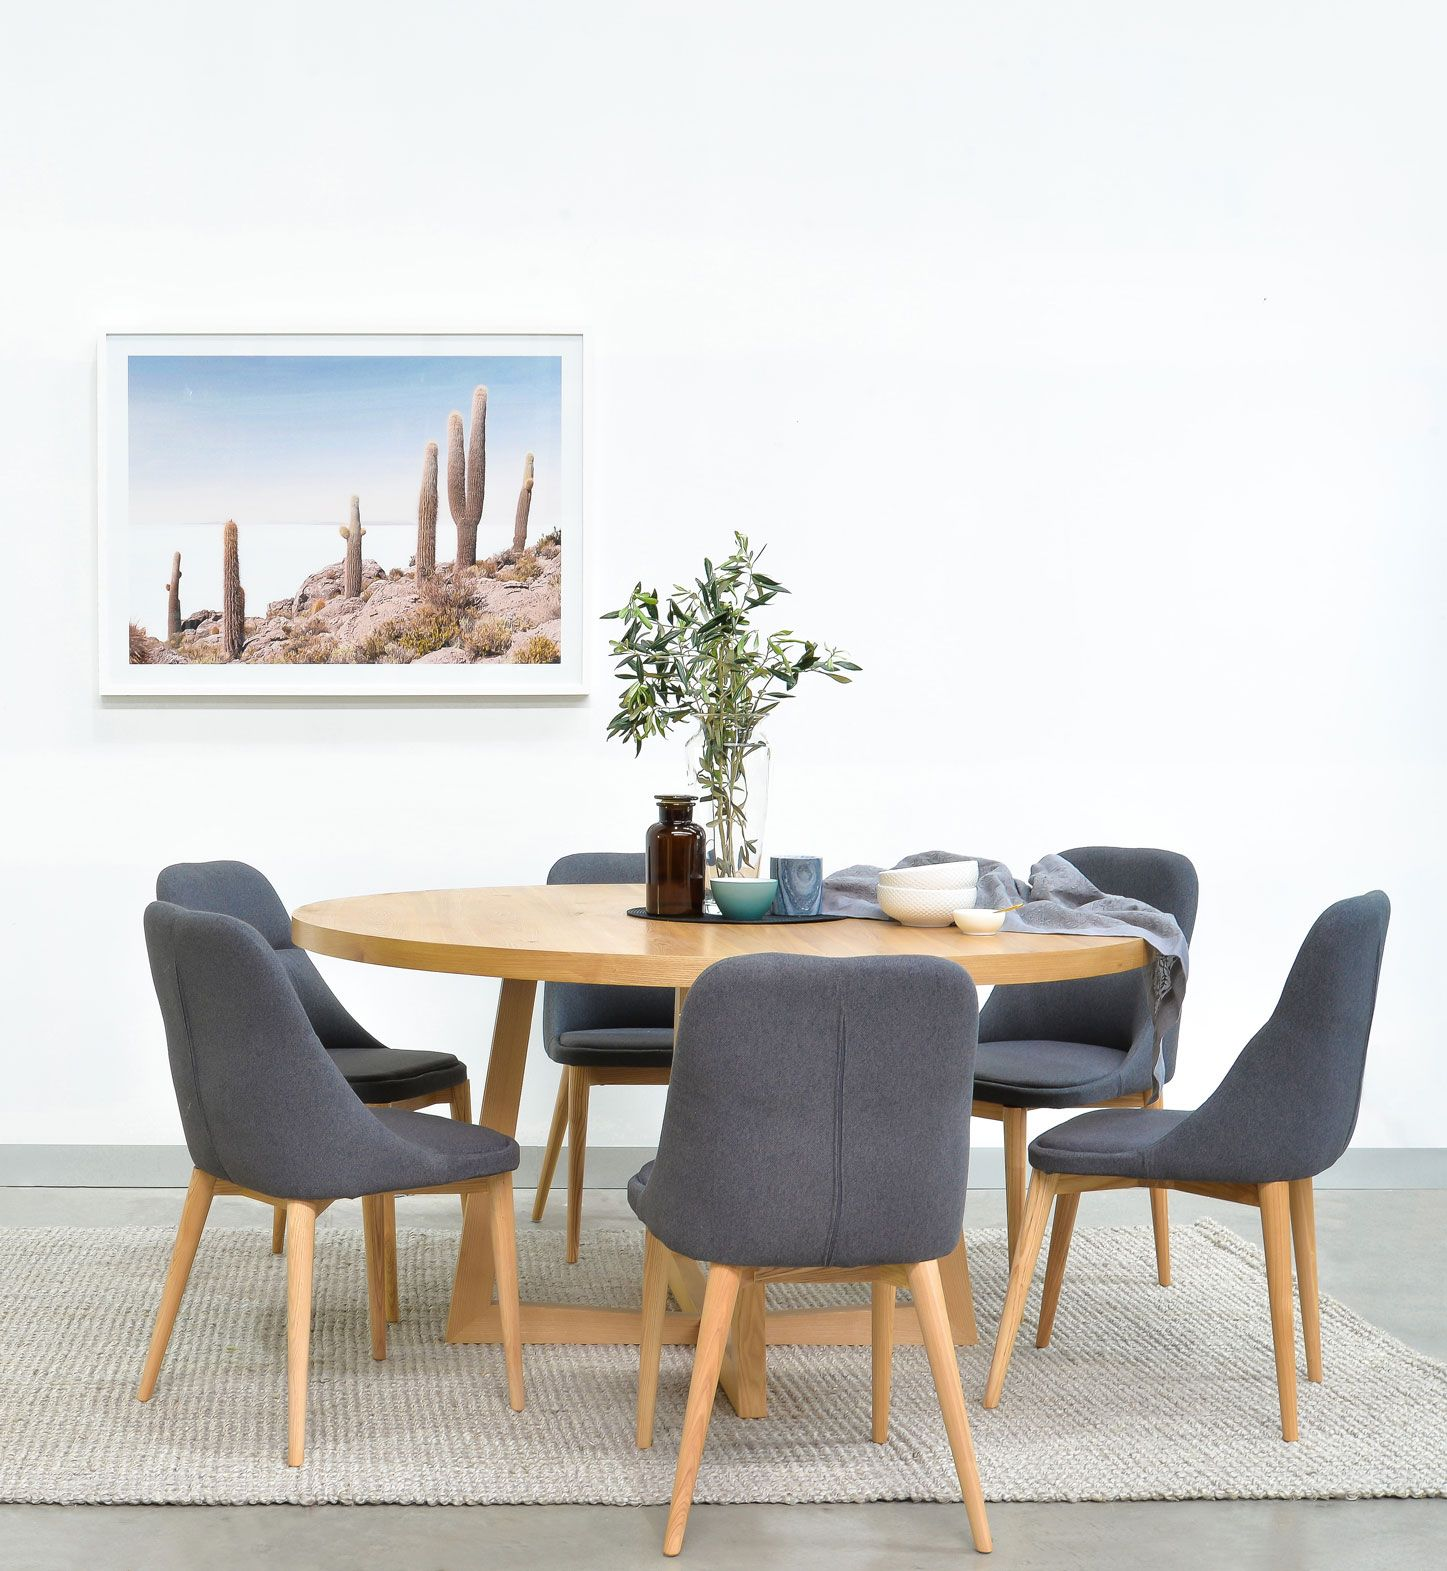 Zodiac 1 5m Round Dining Table Natural Dining Table Round